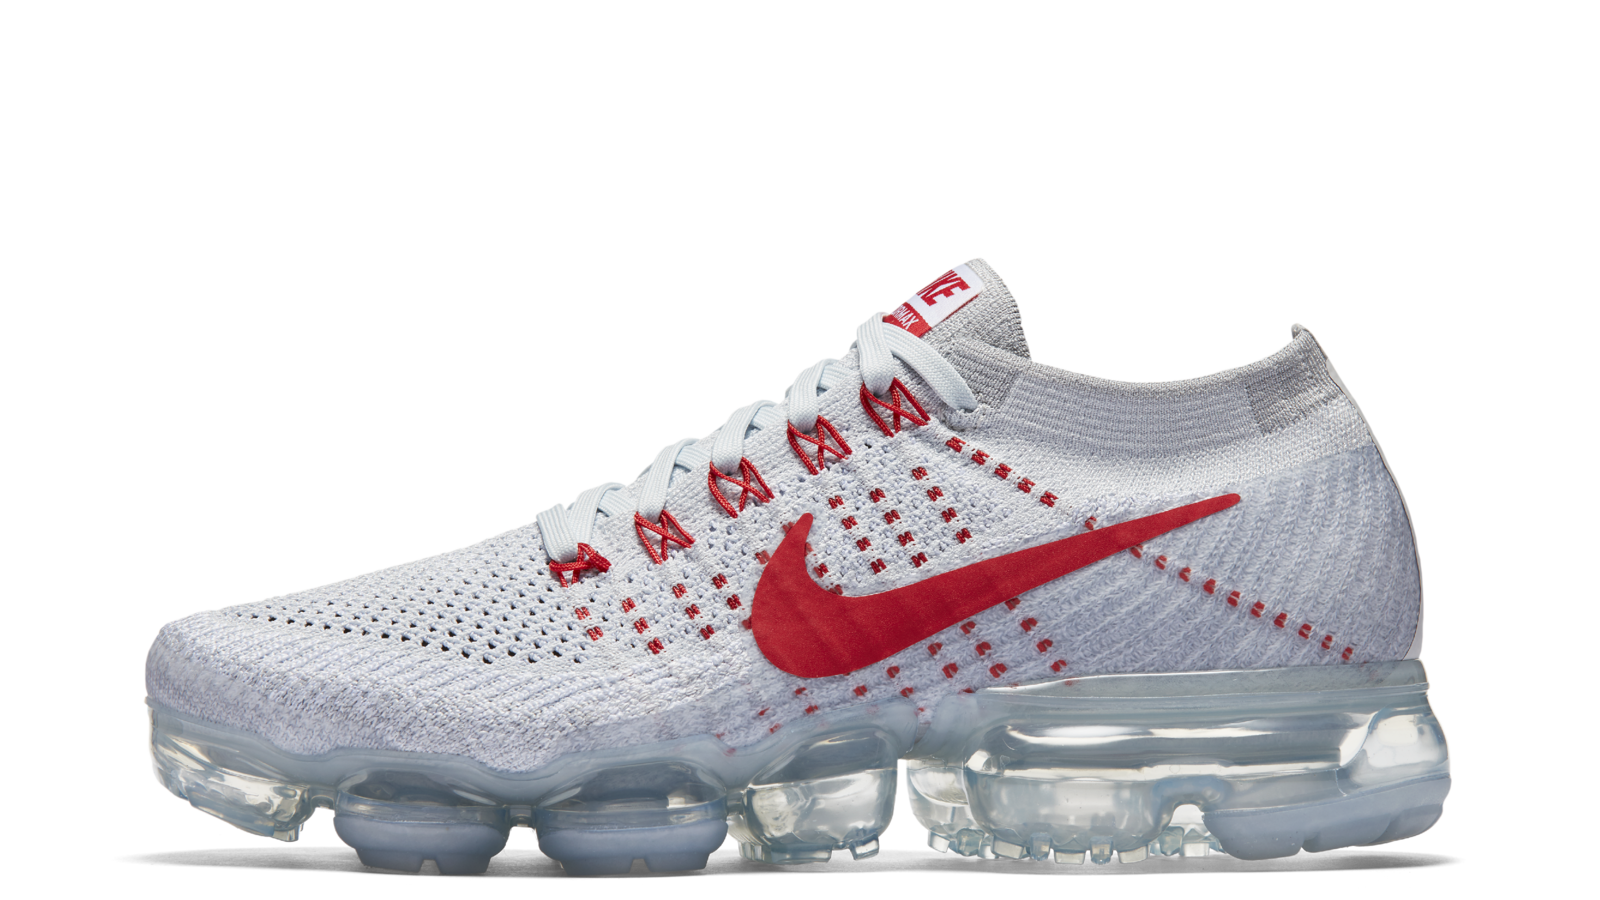 Abstracción coro componente  Nike Air VaporMax Reveals the Pinnacle of Air - Nike News